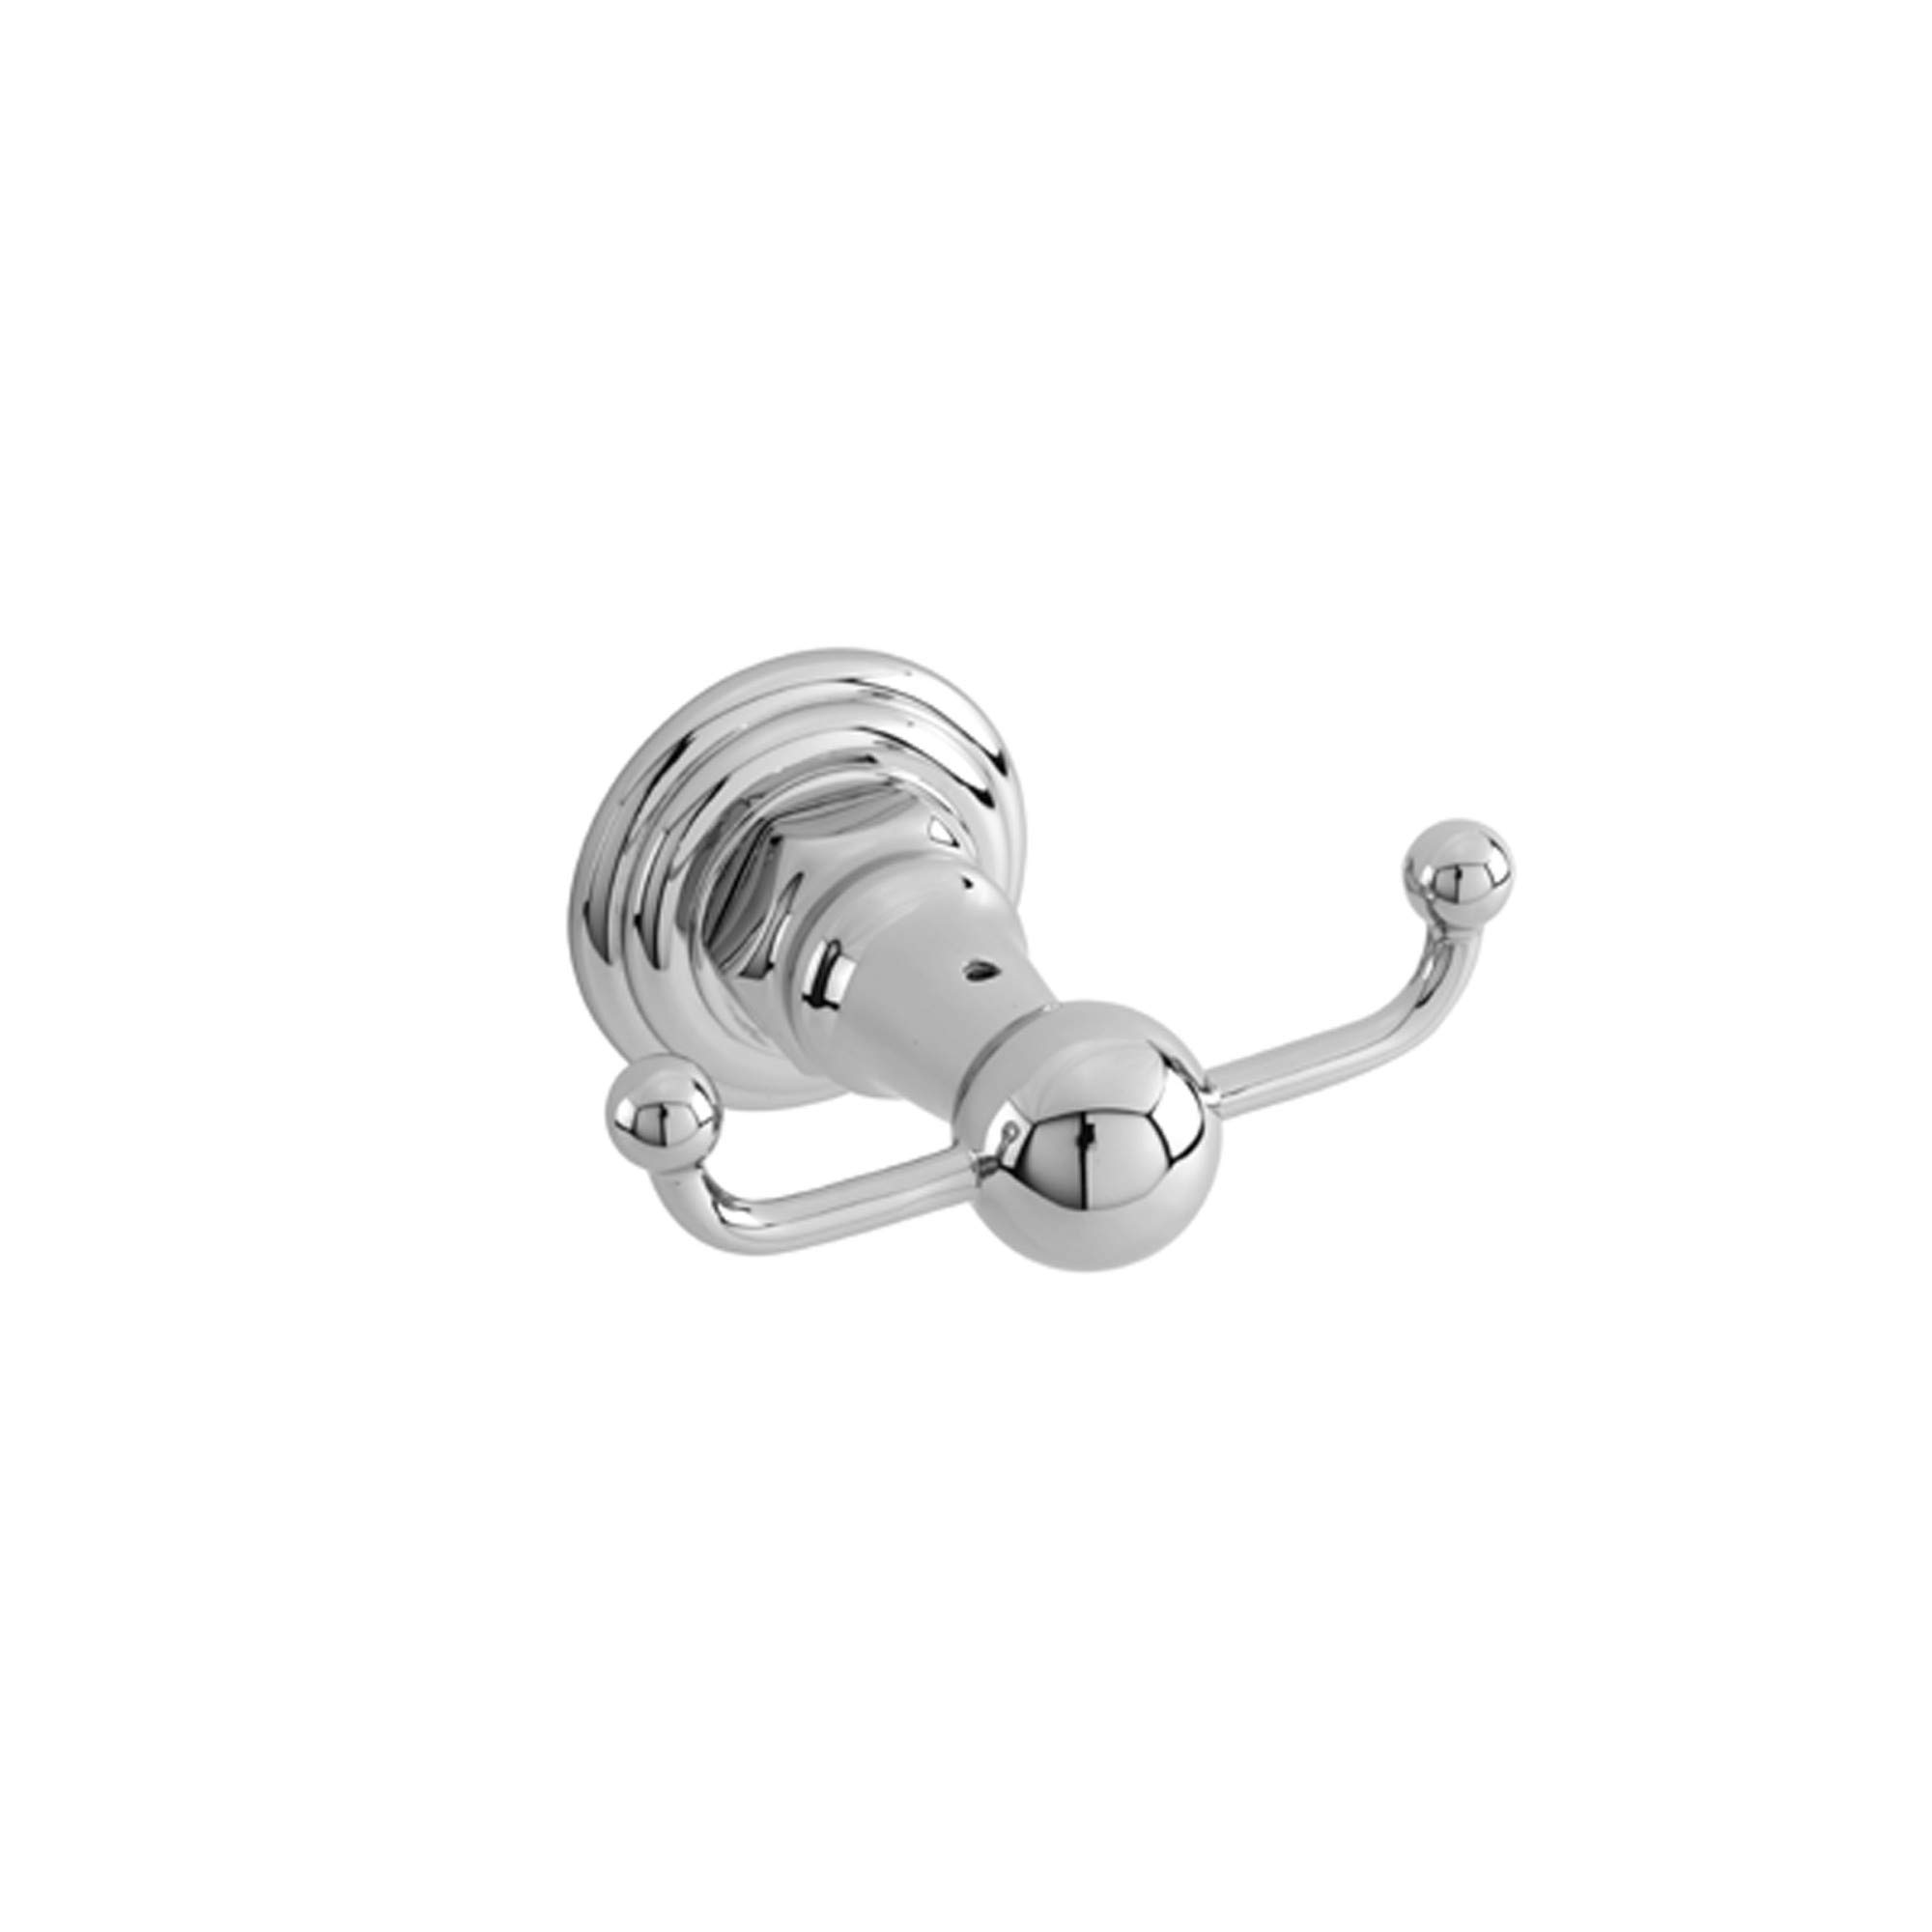 Newport Brass 13-13 Fairfield Wall-Mounted Double Robe Hook, Polished Chrome